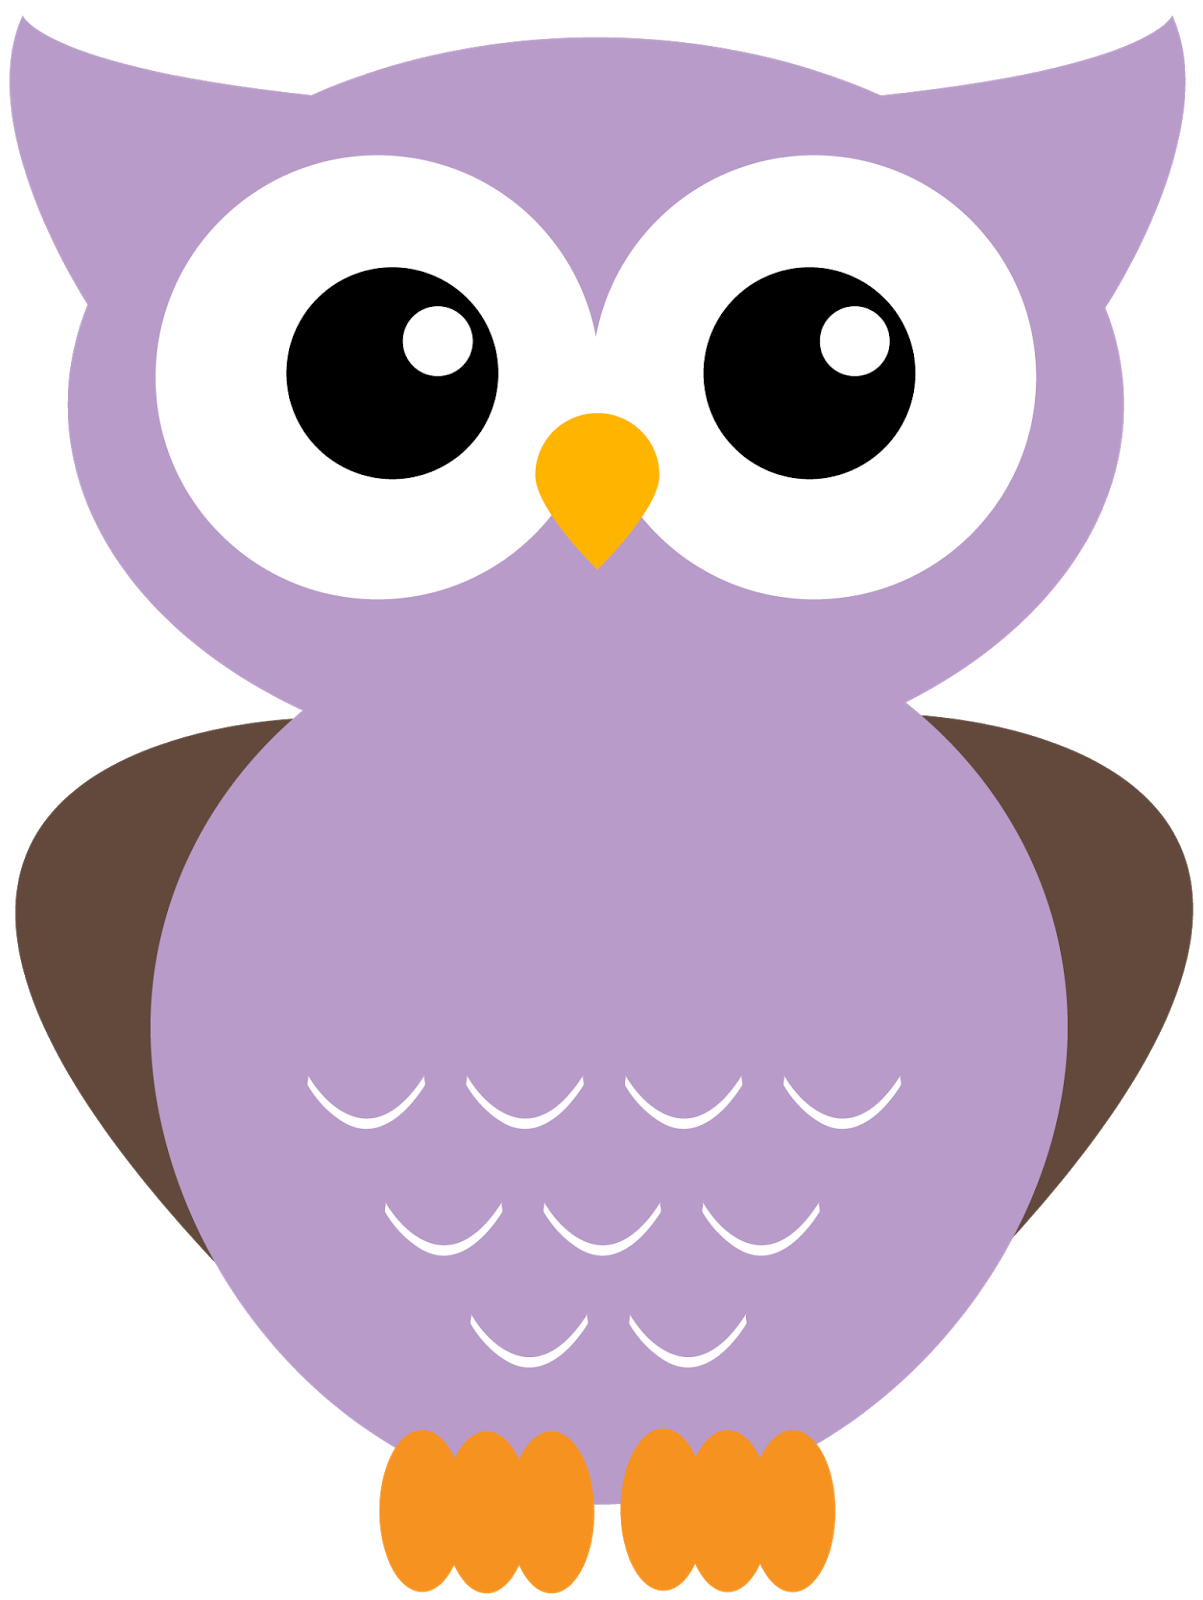 graphic Giggle and print more. Owls clipart purple